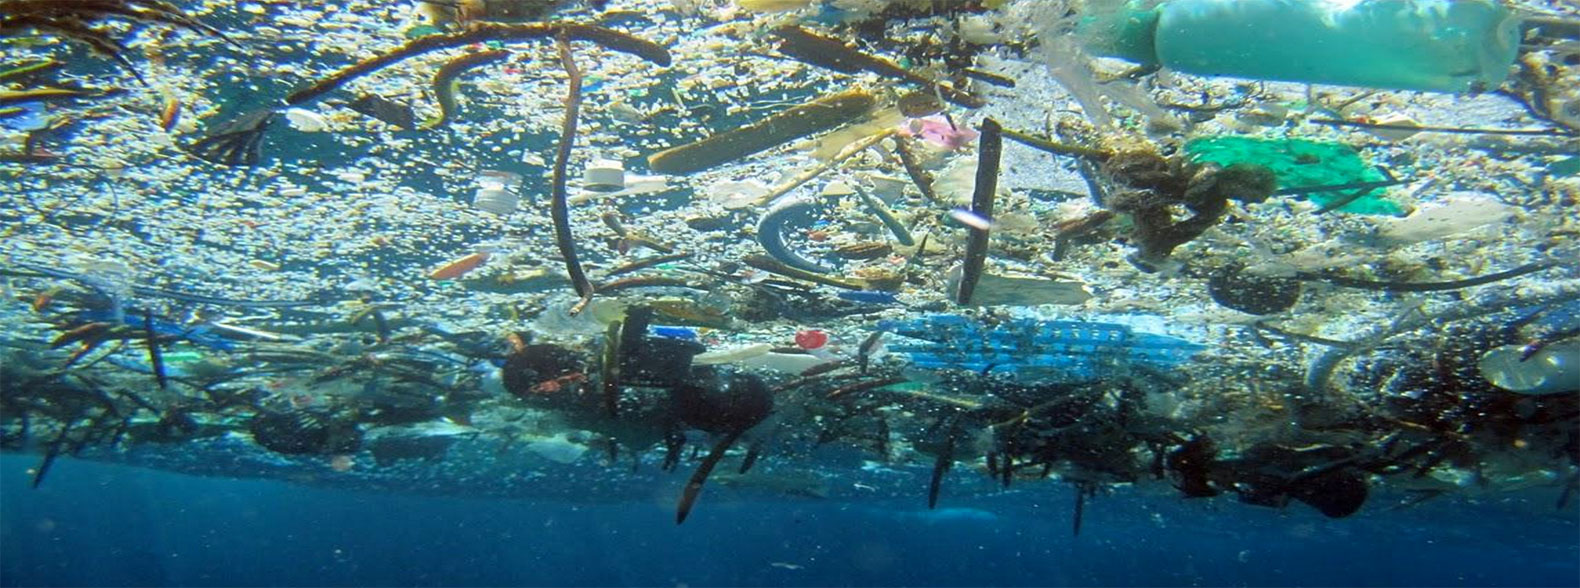 World's first ocean trash recon mission is complete - and the results are way worse than we thought